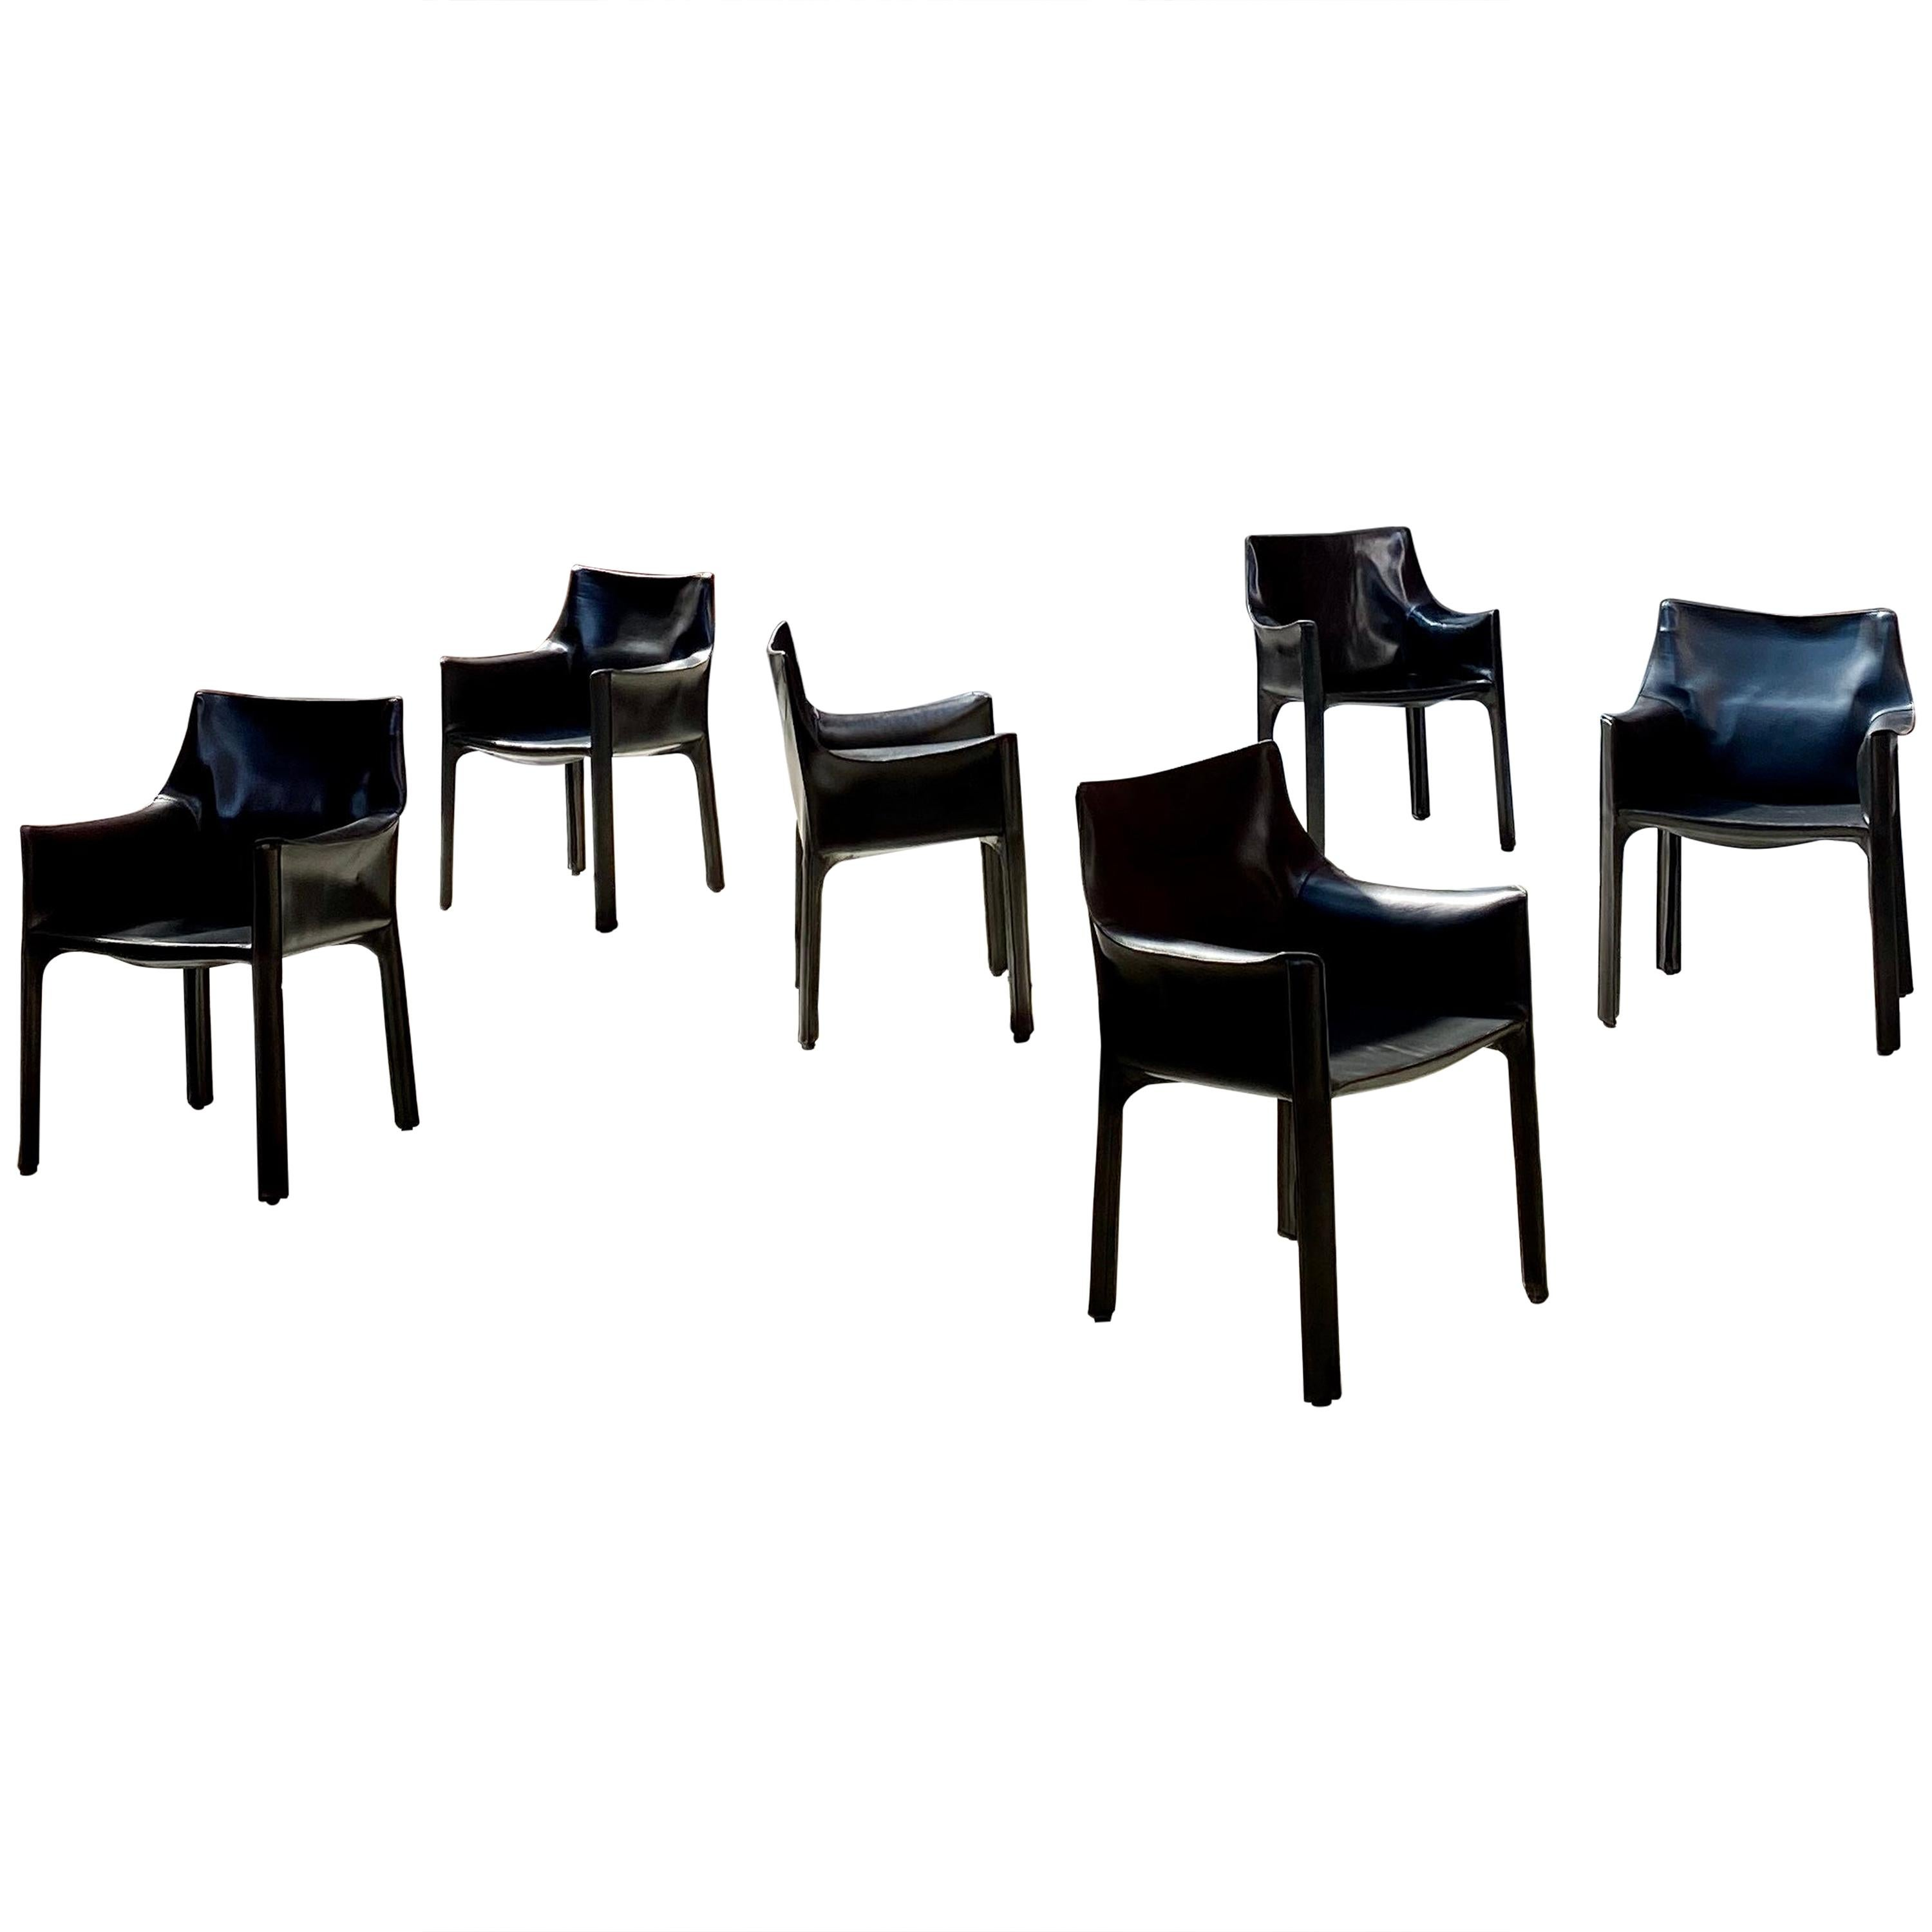 "Mario Bellini 413 ""CAB"" Leather Armchairs for Cassina, 1977, Set of 6"